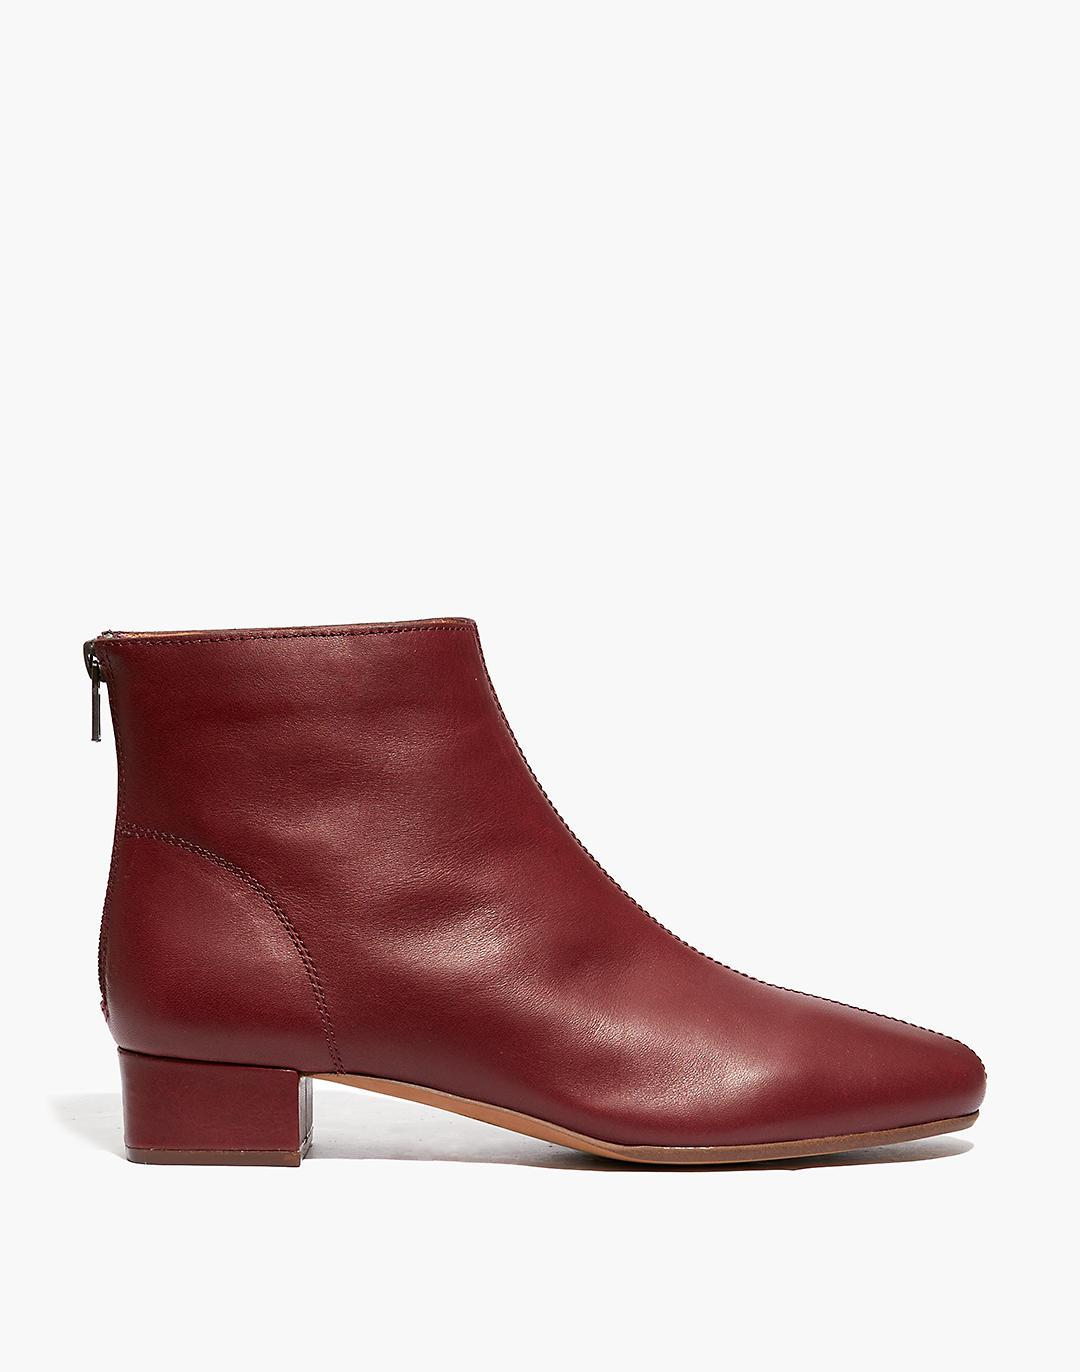 The Rena Ankle Boot in Leather 1